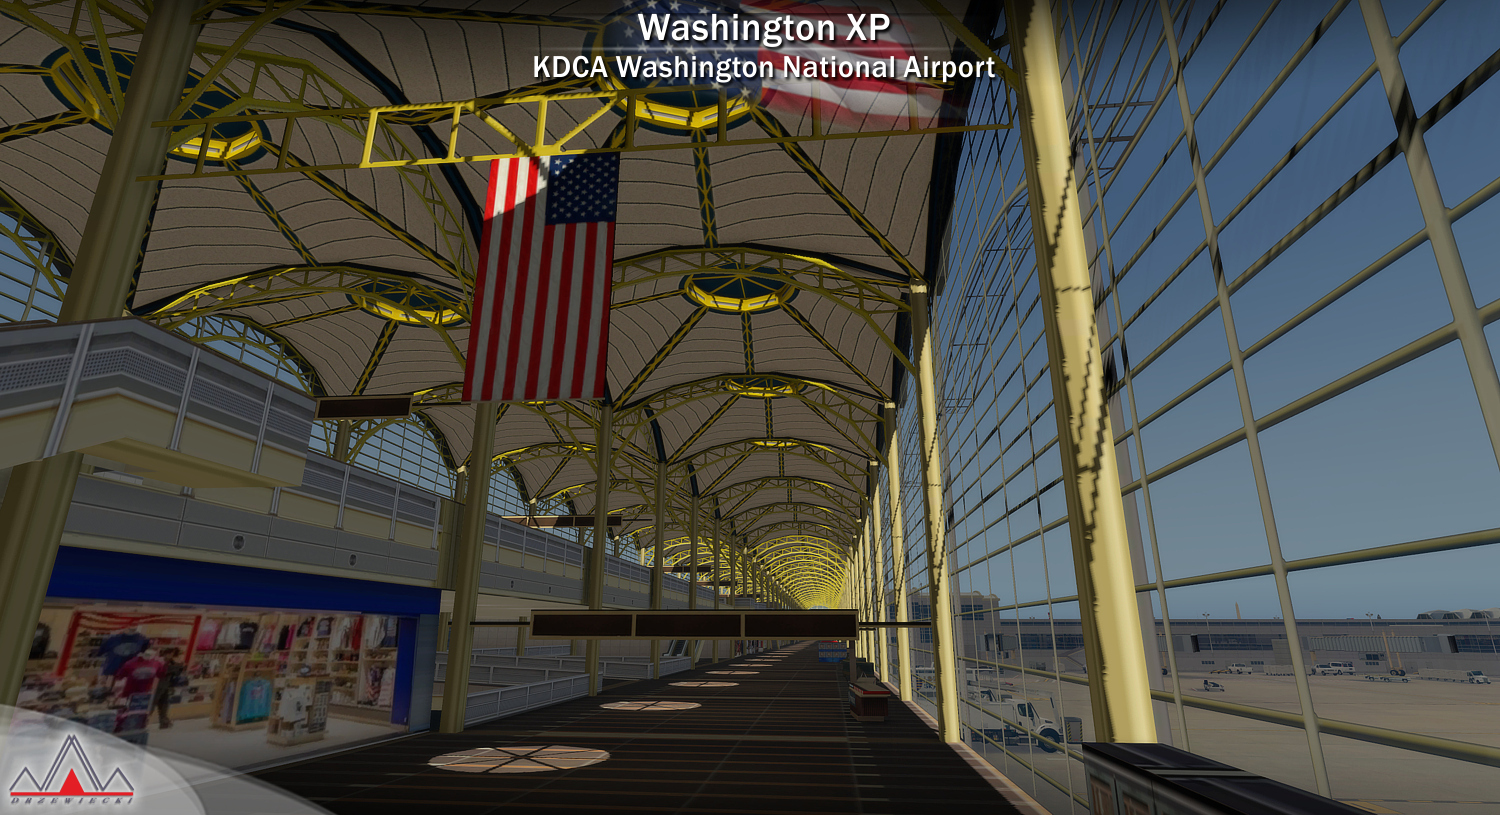 DRZEWIECKI DESIGN - WASHINGTON XP -  X-PLANE 10/11